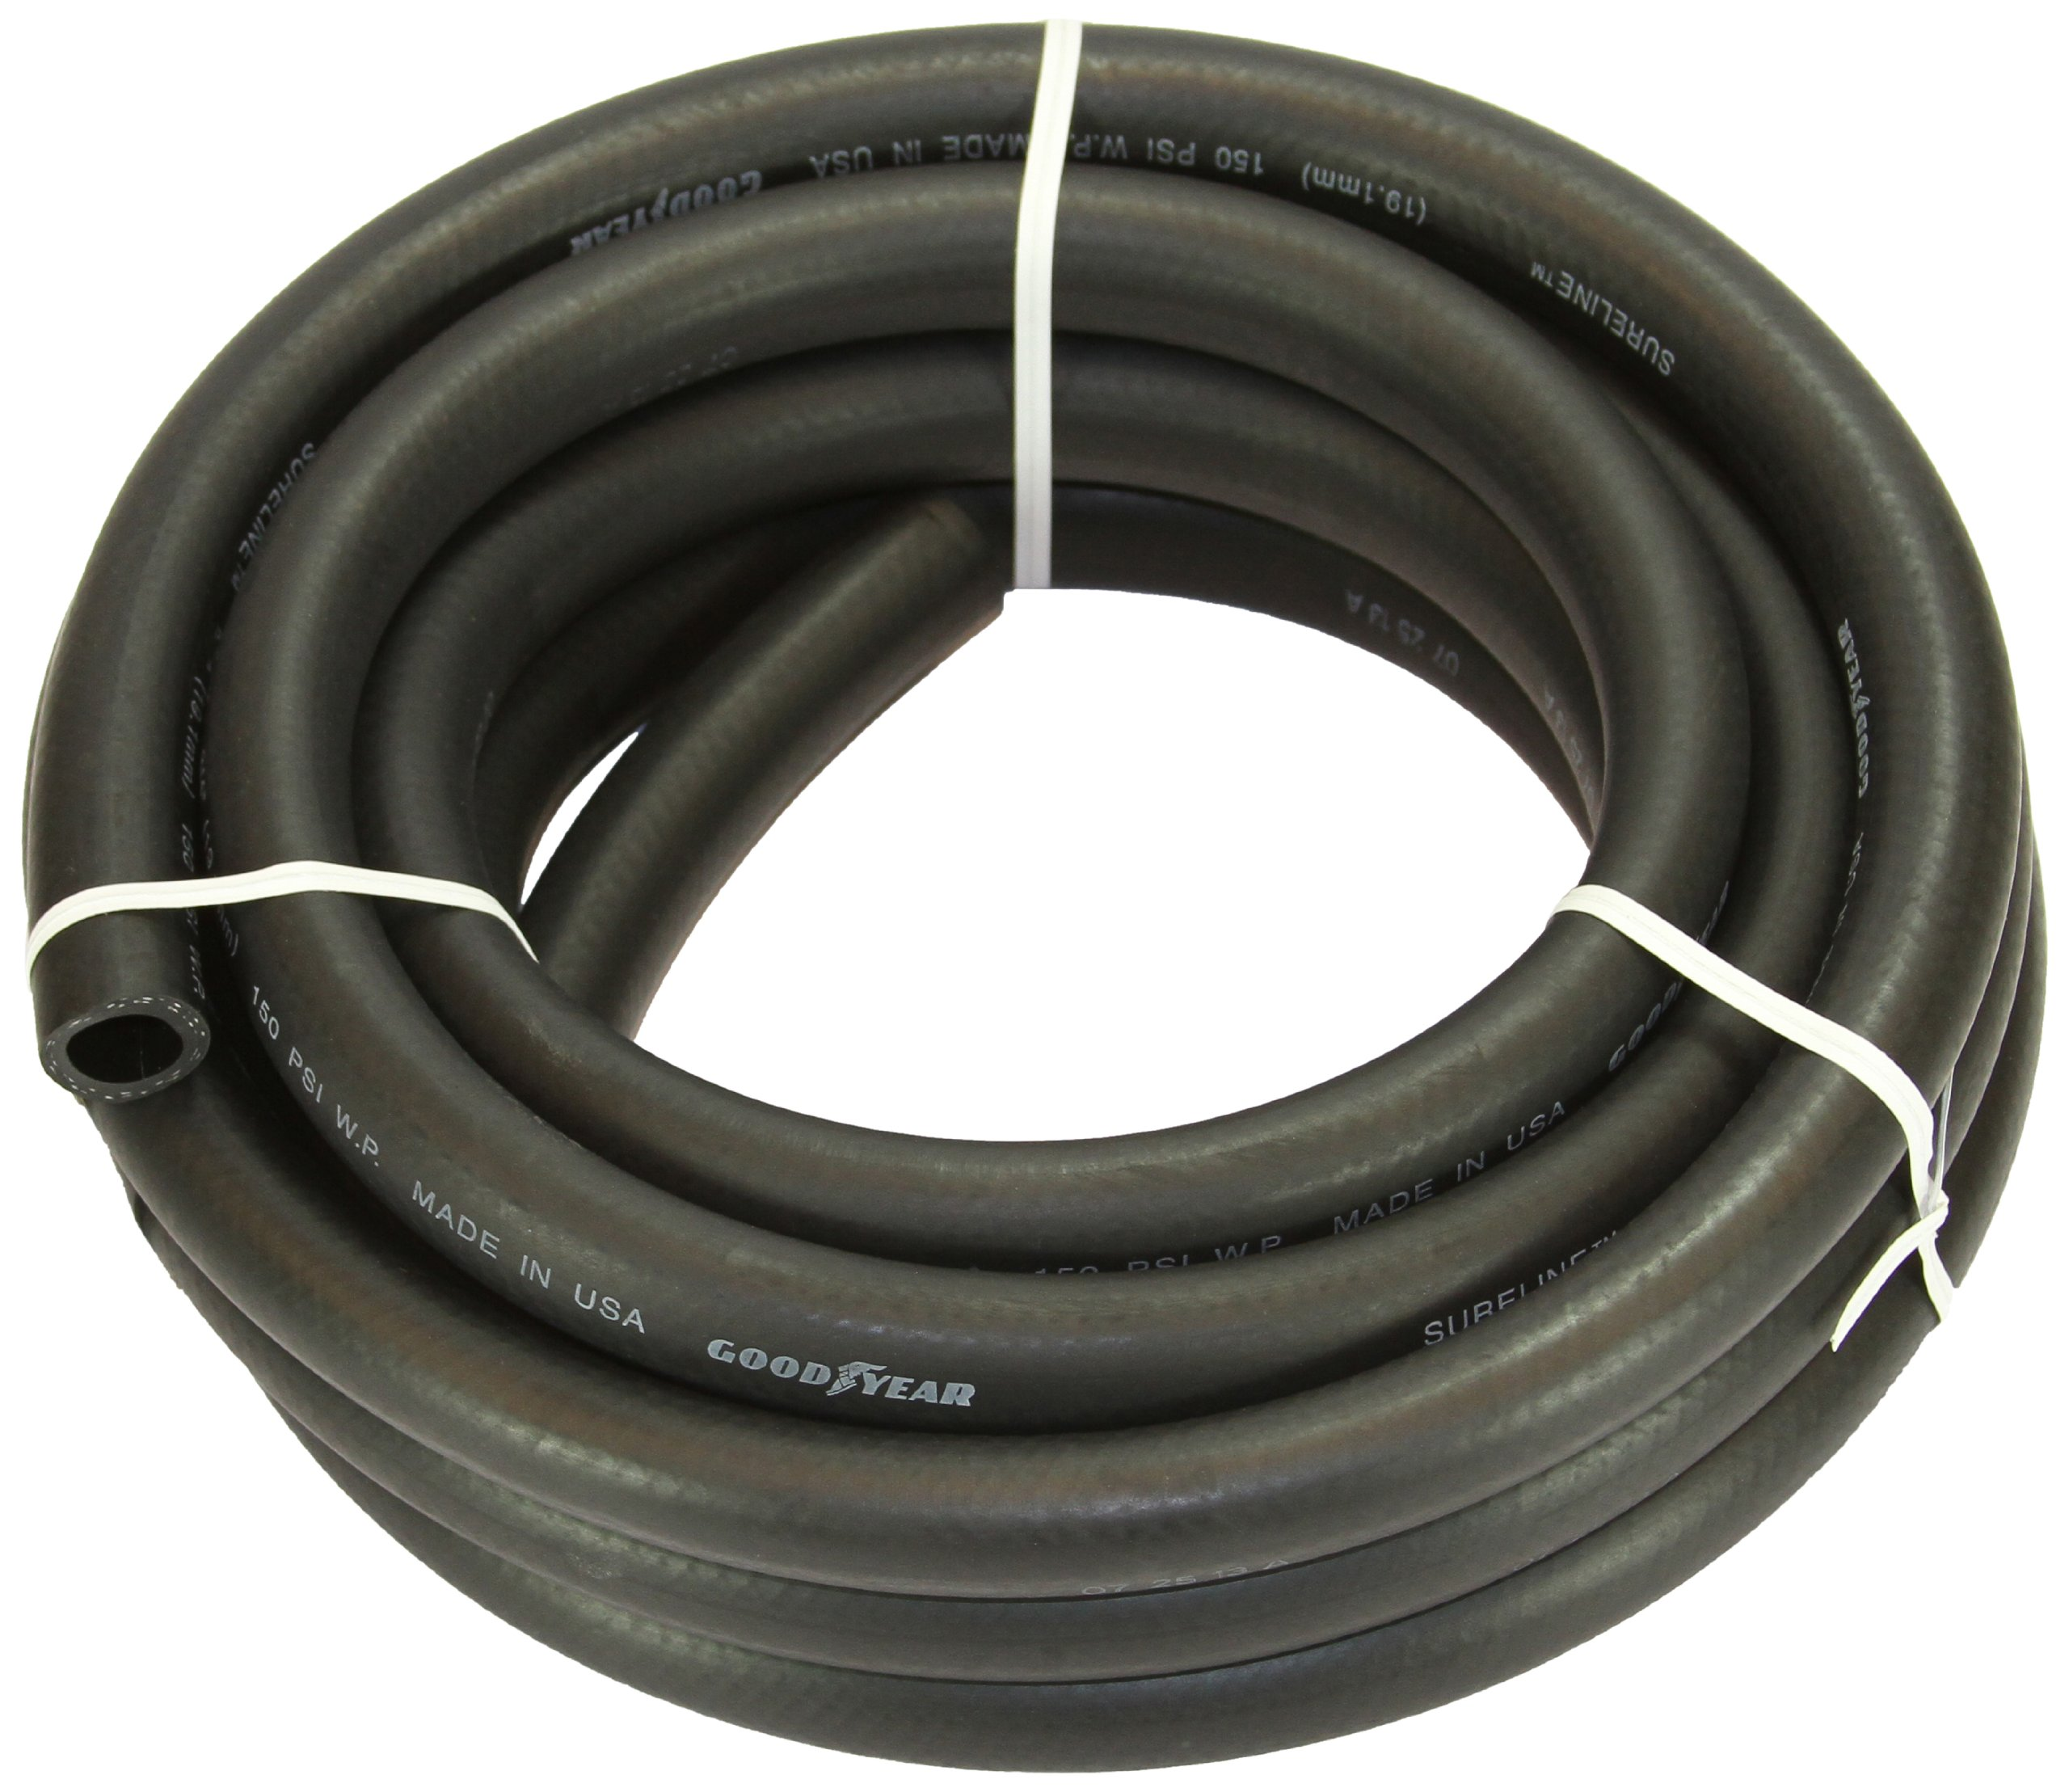 Abbott Rubber X1110-0751-25 EPDM Rubber Agricultural Spray Hose, 3/4-Inch ID by 25-Feet by Abbott Rubber